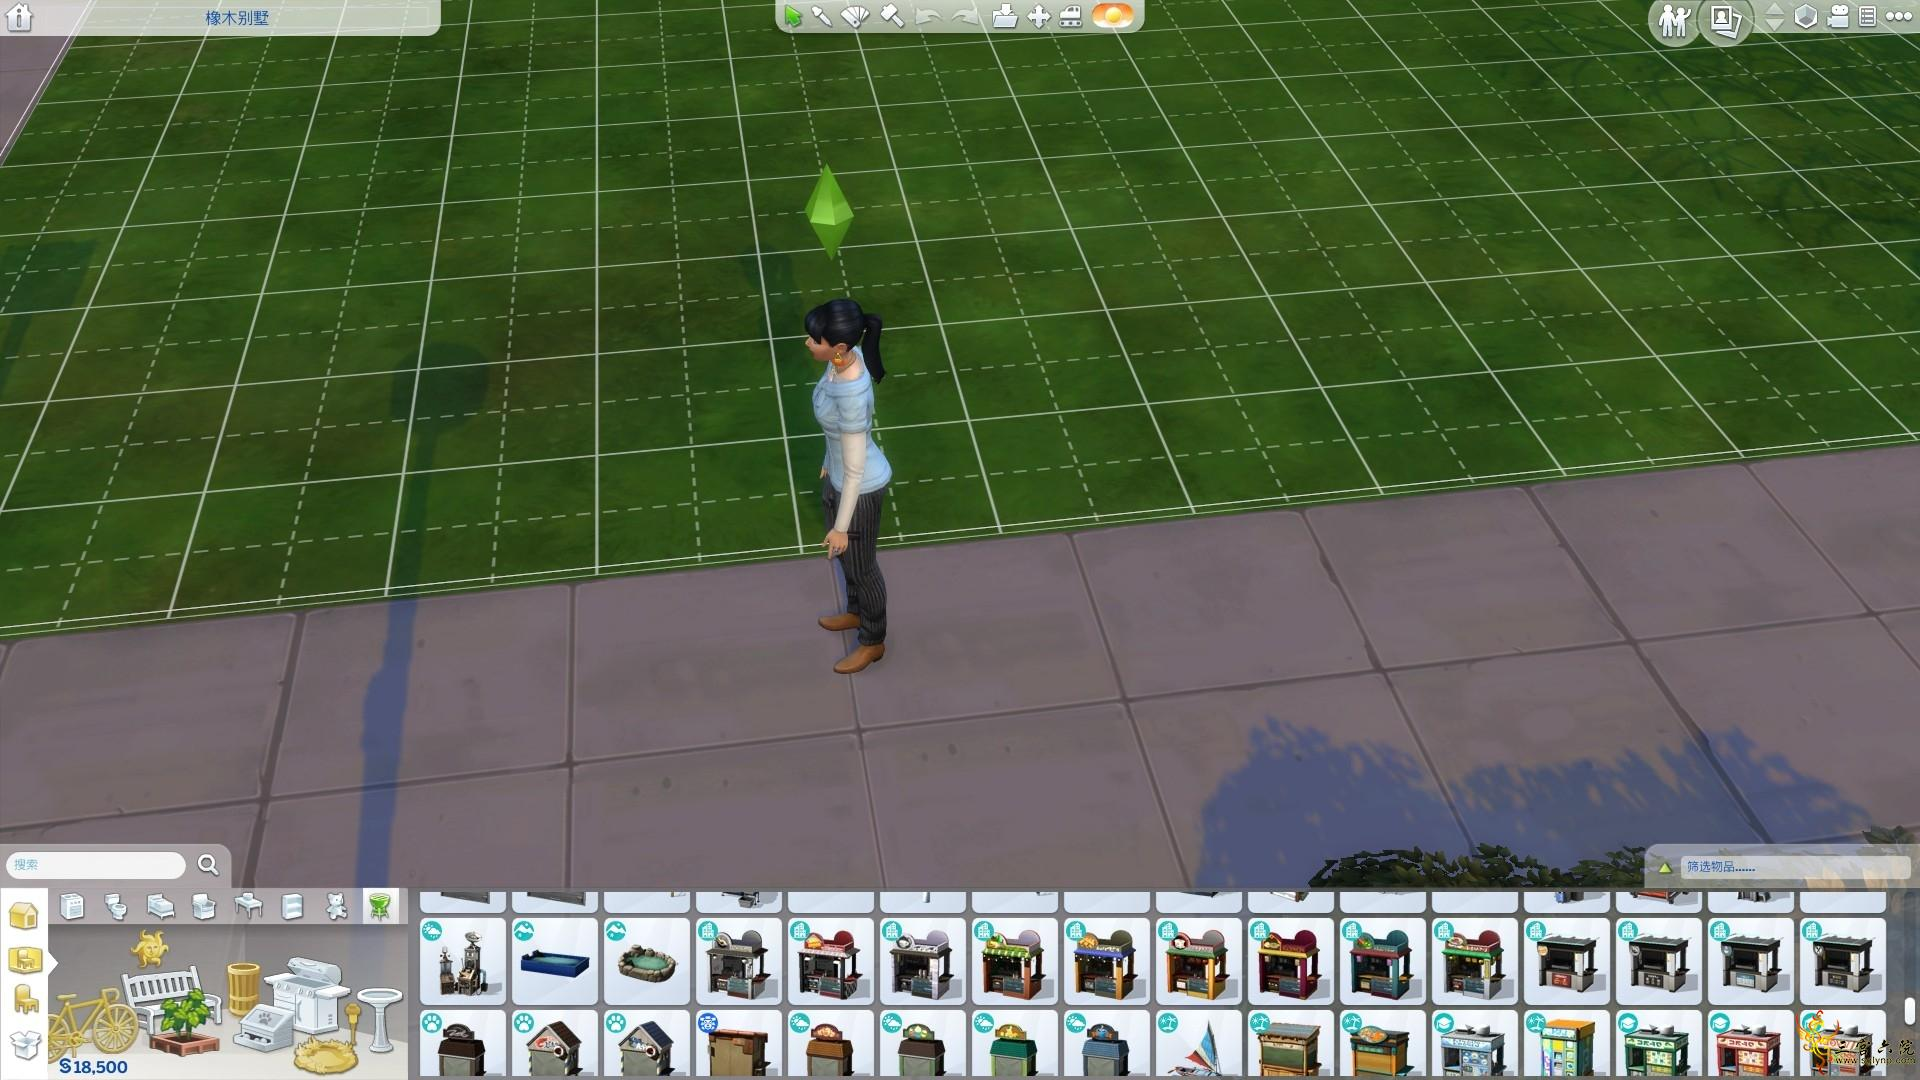 The Sims 4 2021_9_15 1_20_47.png